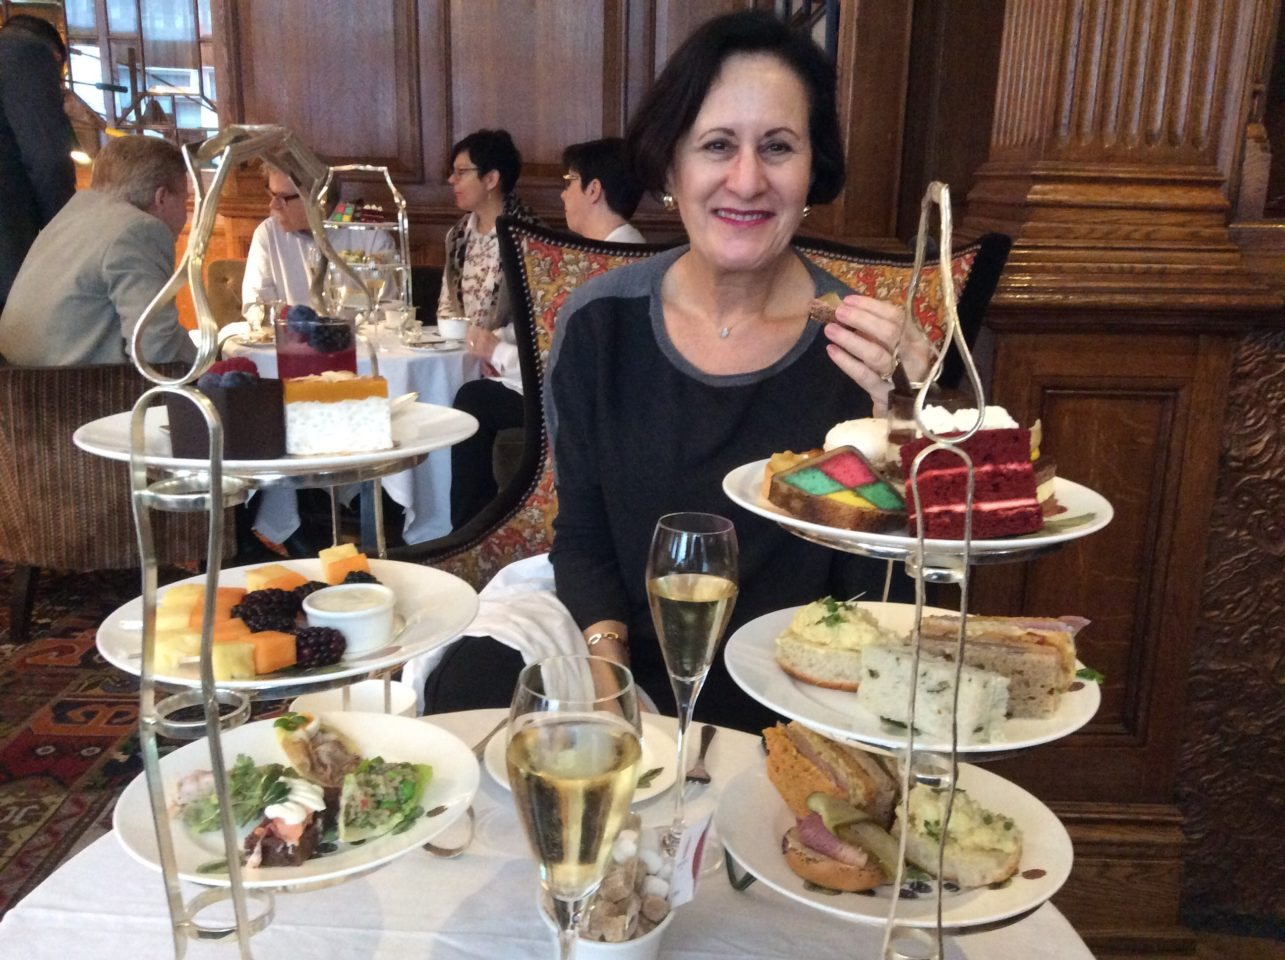 Afternoon Tea at The English Tea Room of Brown's Hotel in London